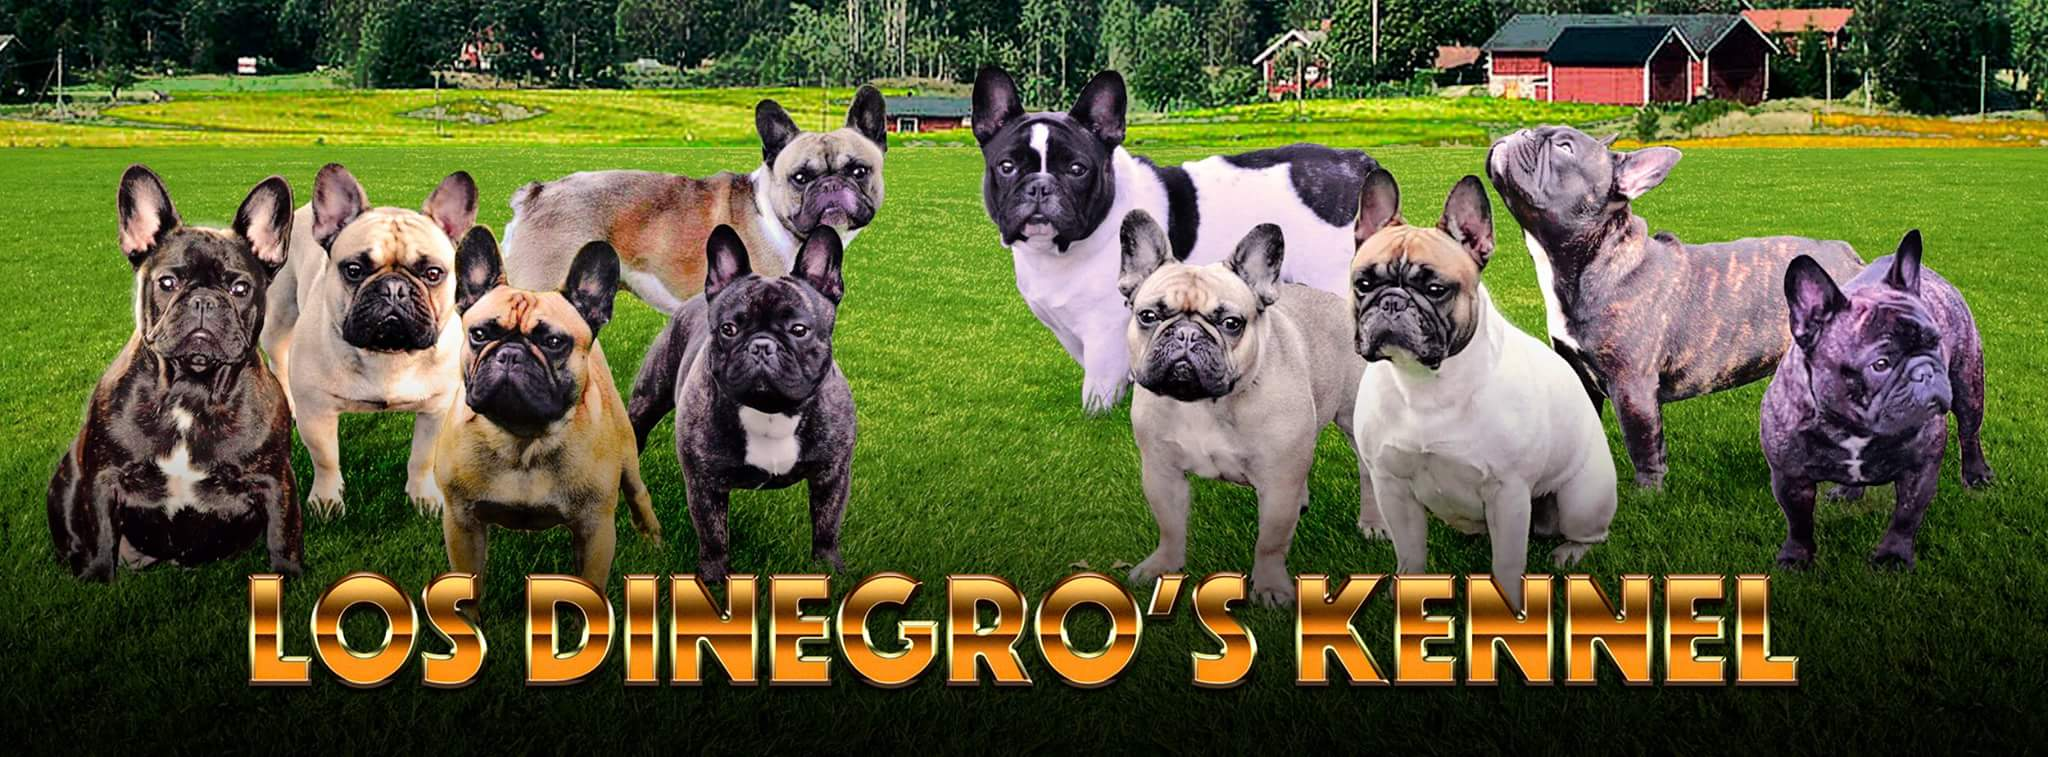 Los Dinegro's Kennel